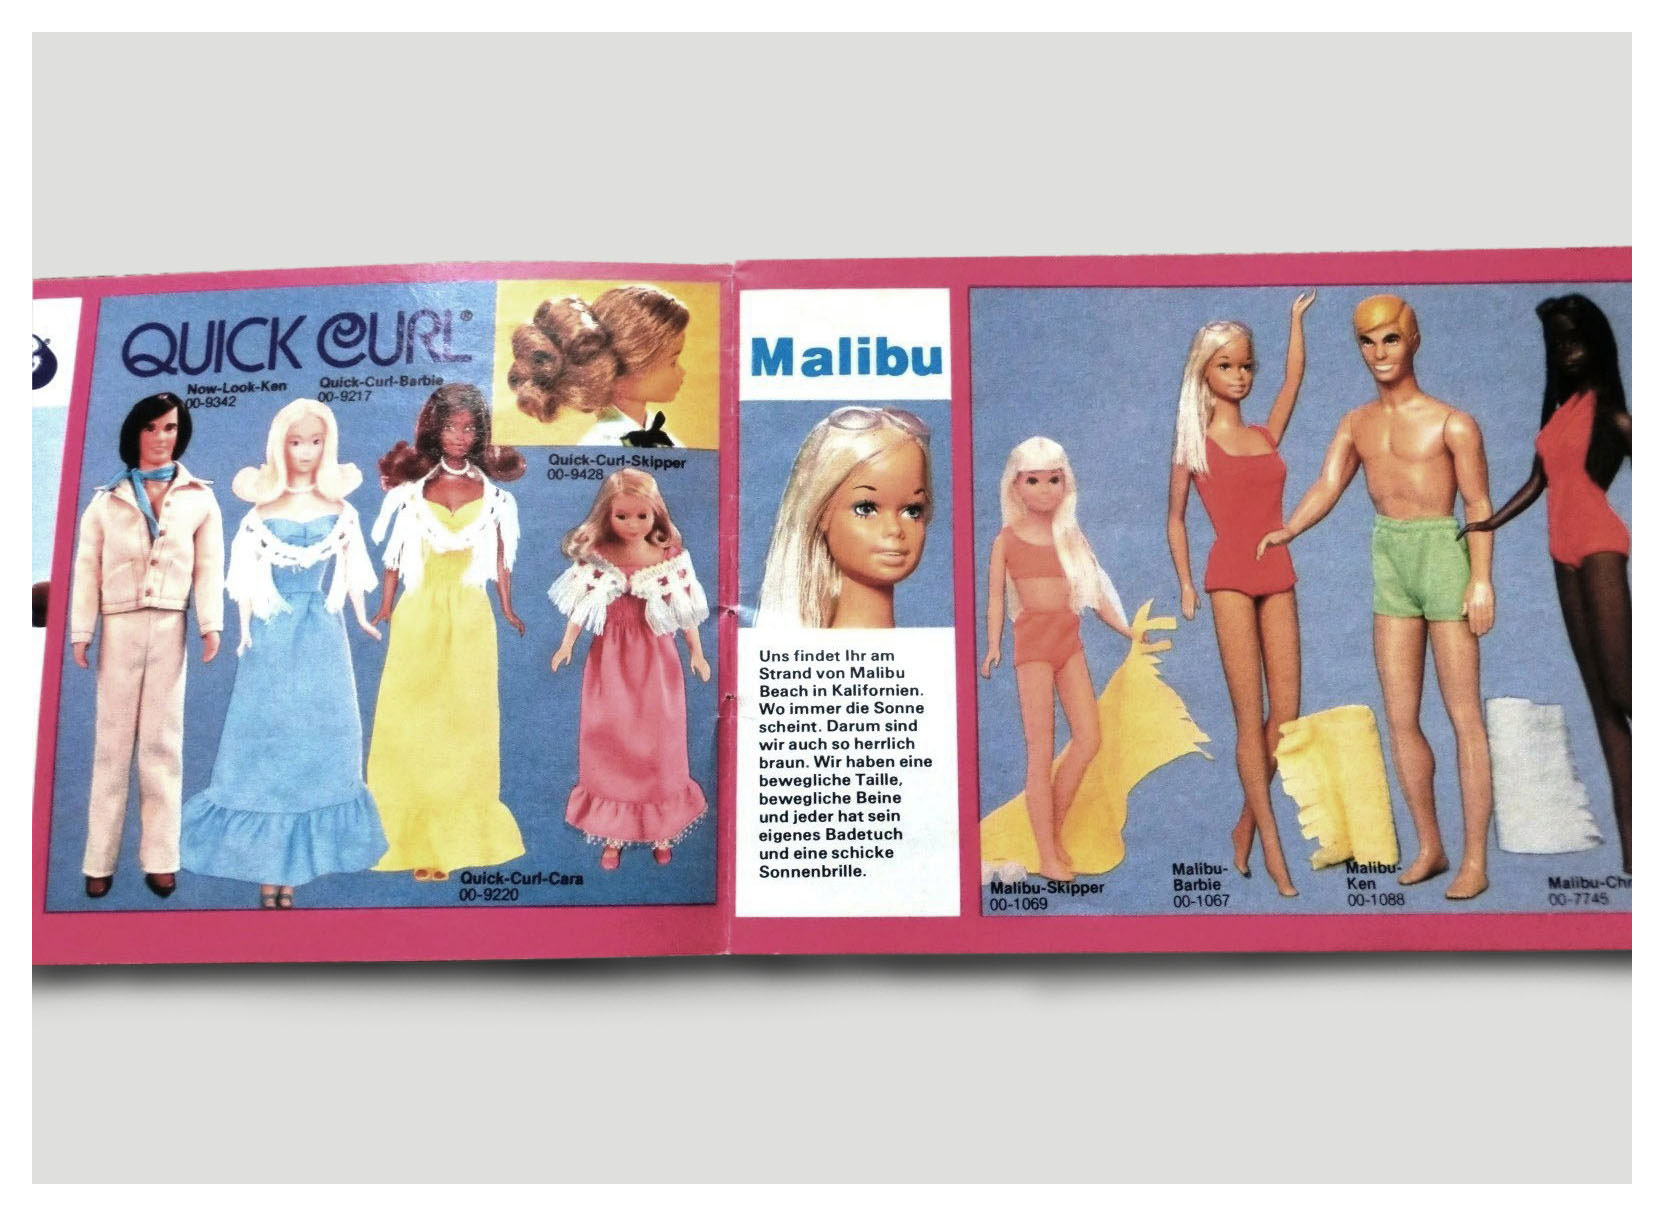 From 1977 German Barbie booklet